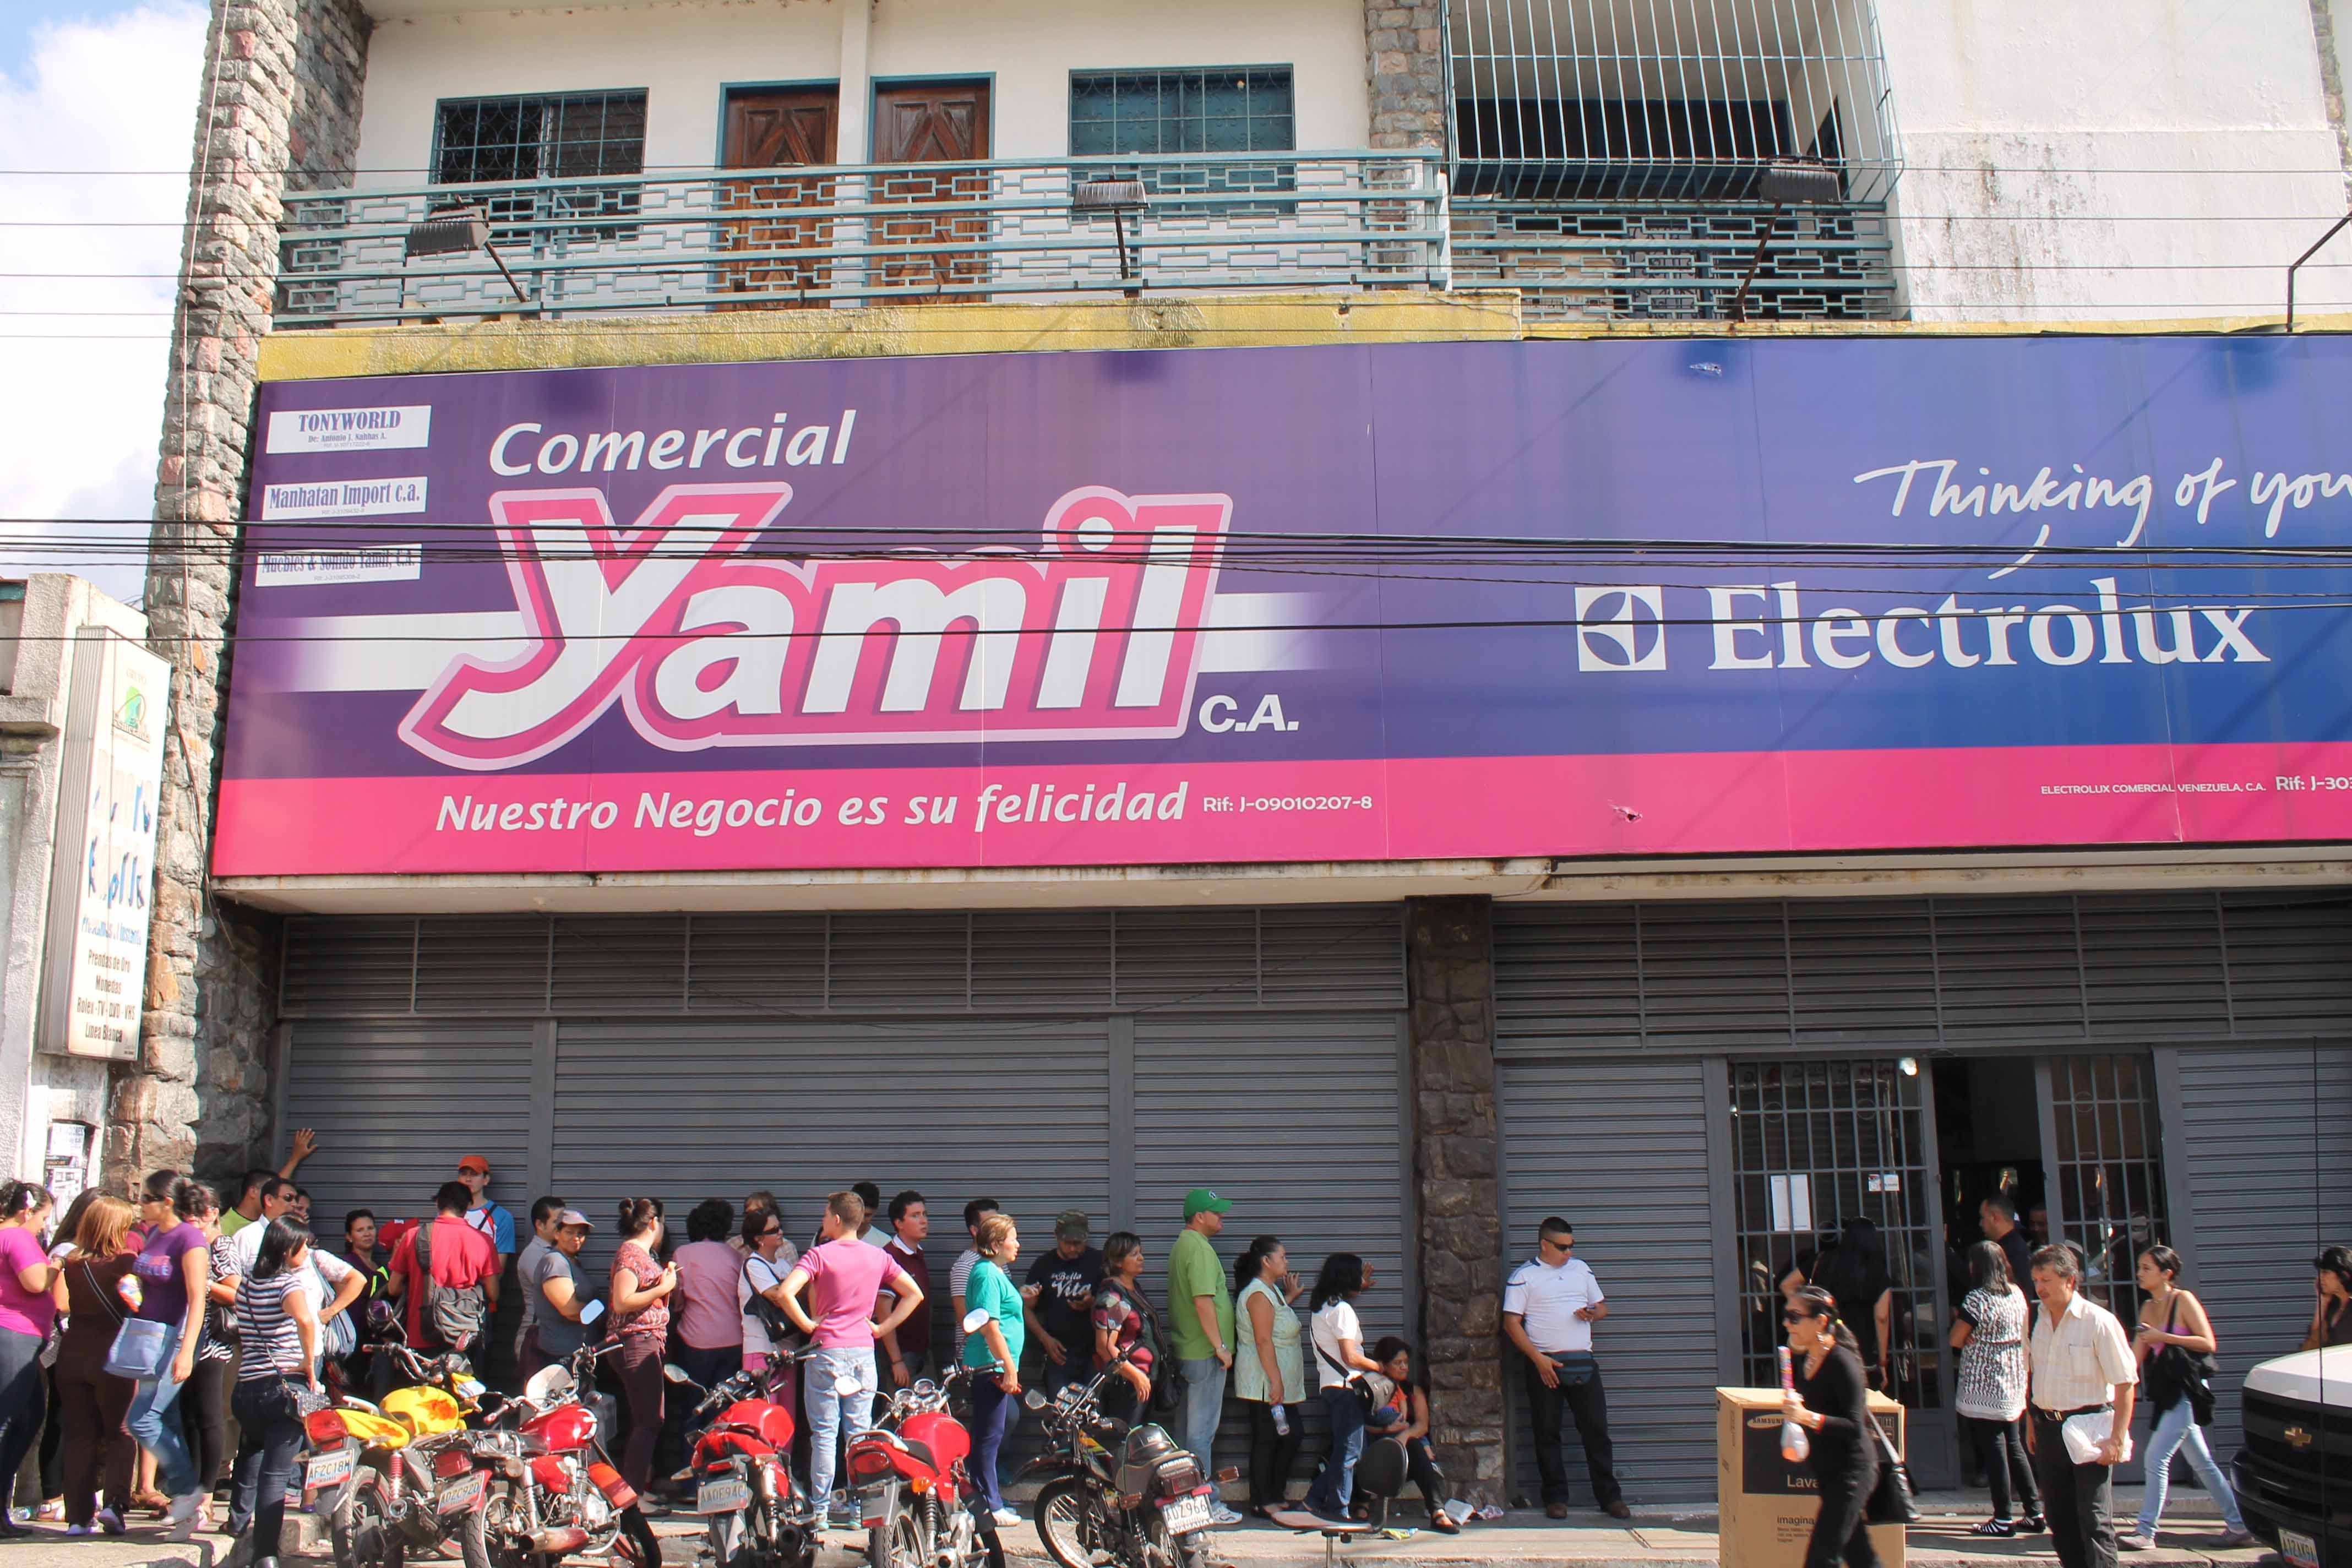 Citizens Queuing Outside Electronics Store Yamil Last Saturday In The Hope  Of Buying Reduced Price Goods (all Images Courtesy Of Harry Greatorex)